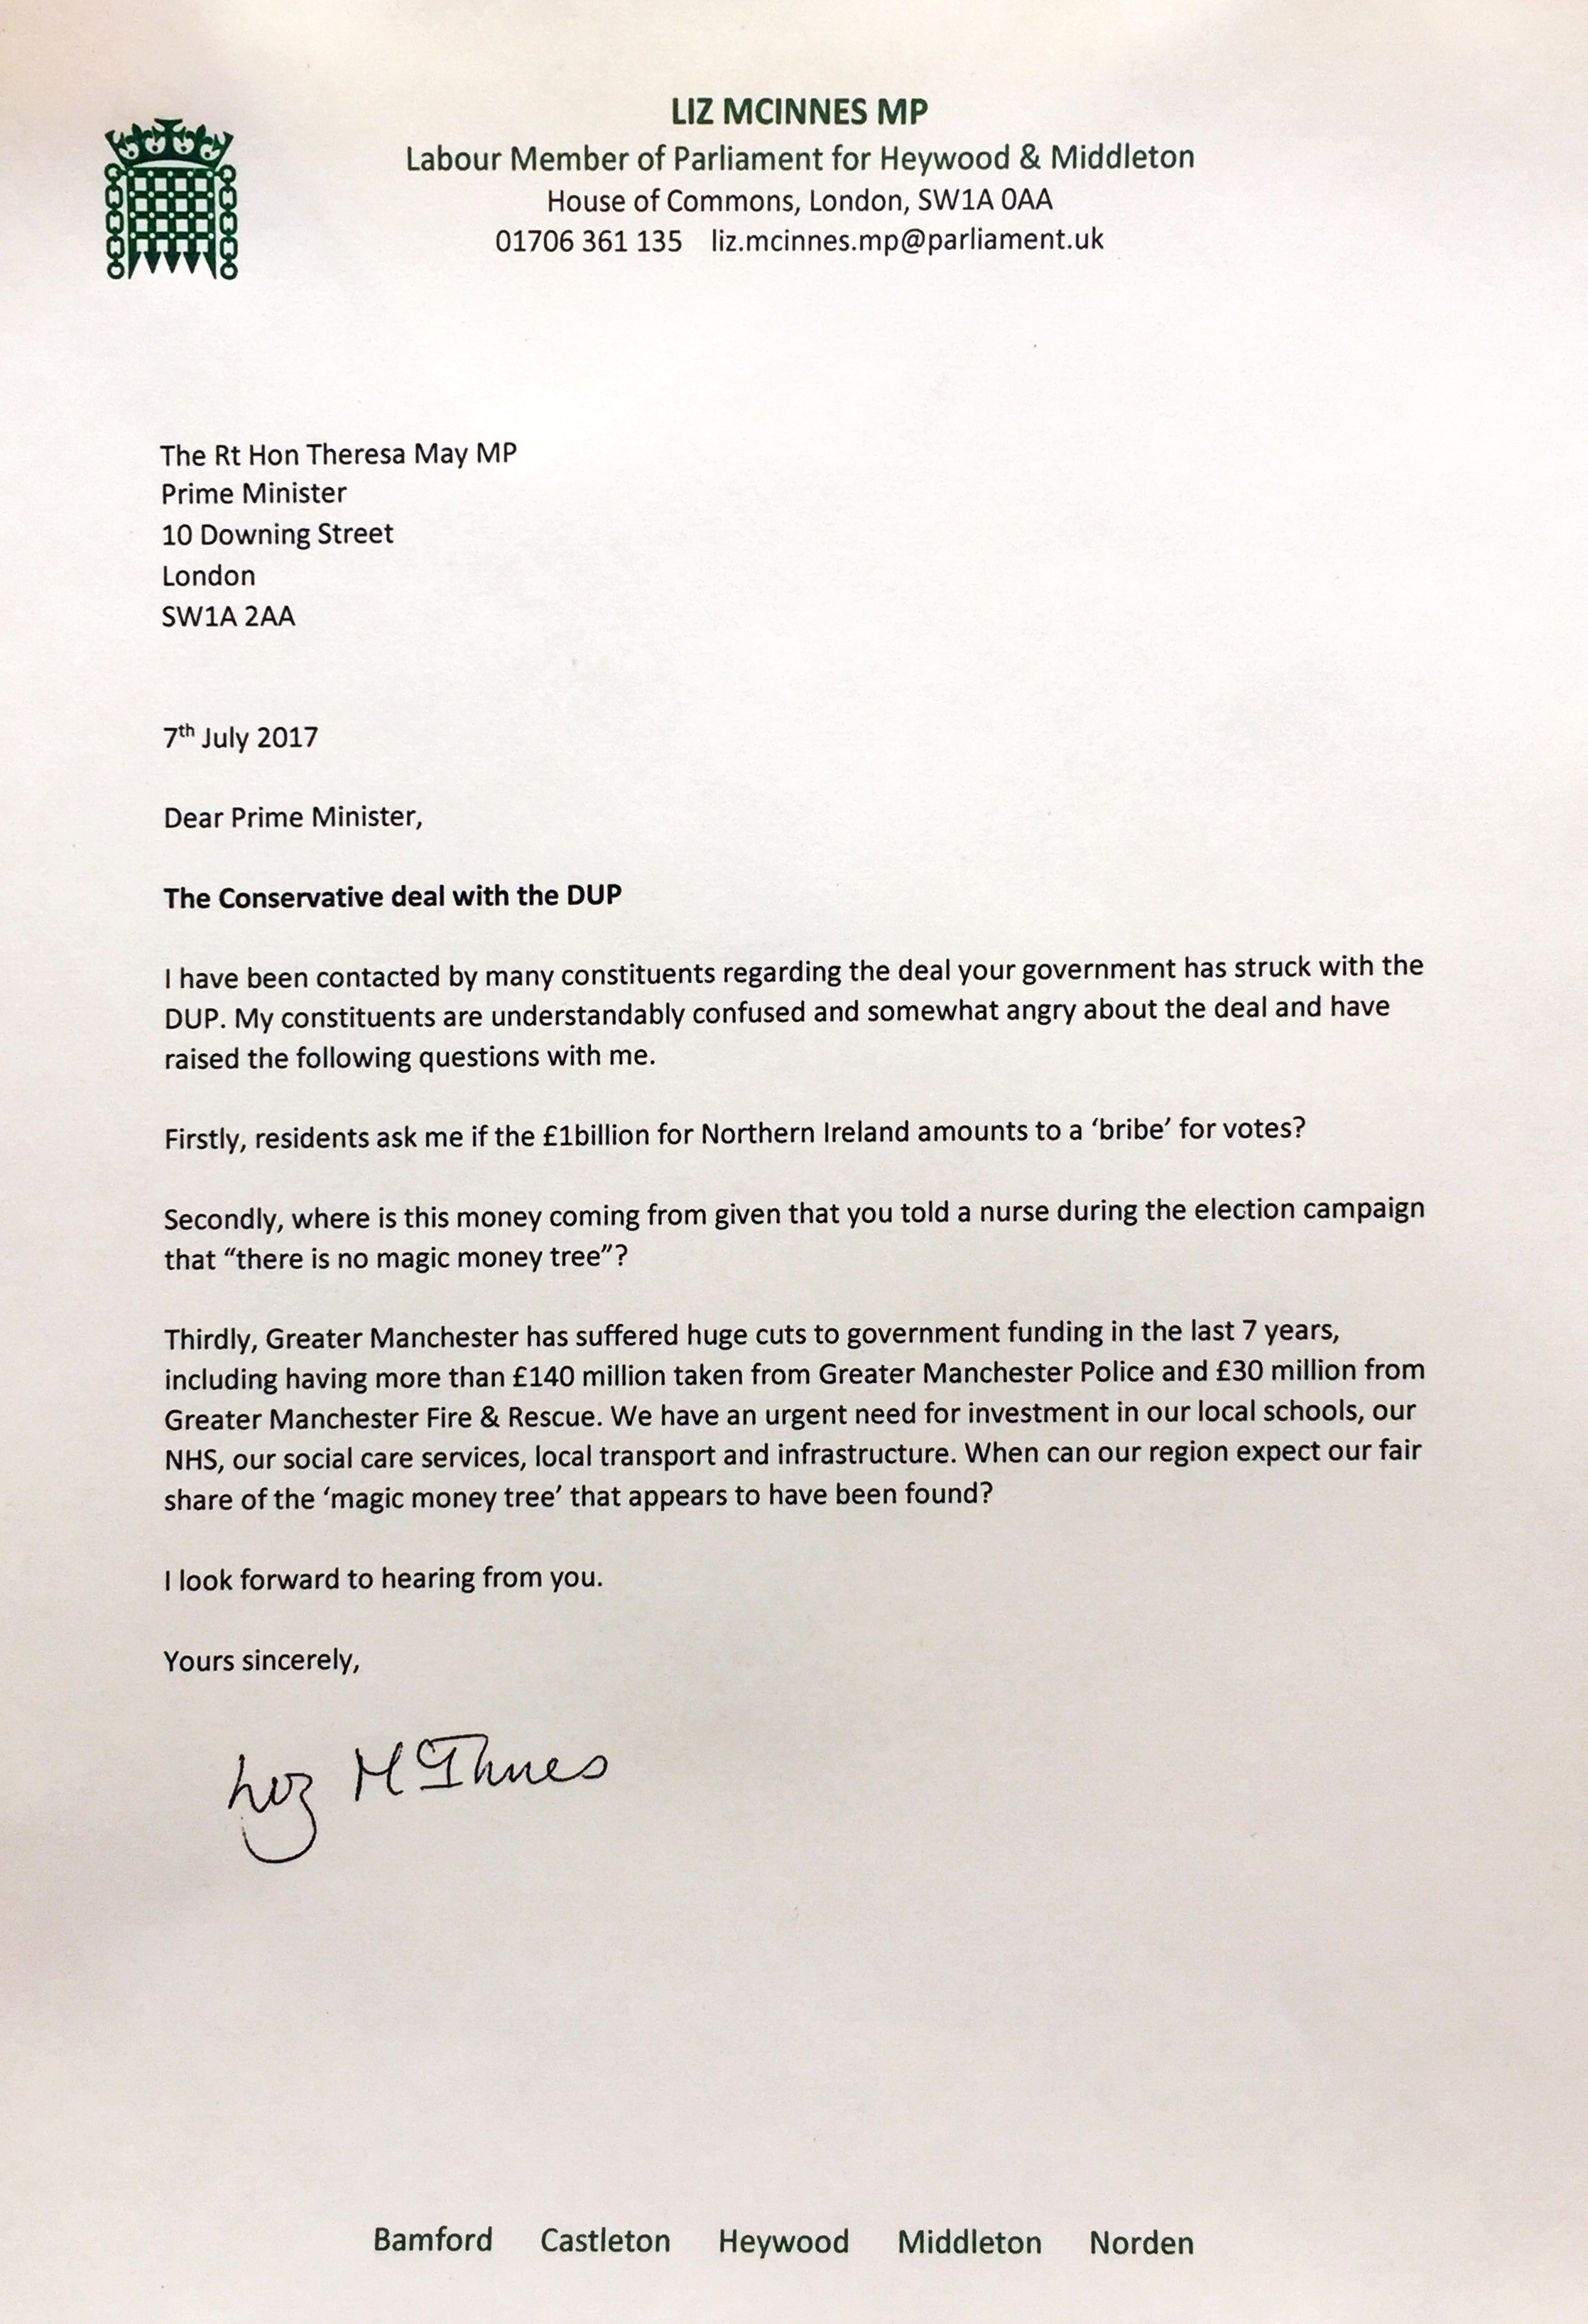 Liz_McInnes_MP_letter_to_the_PM.jpg